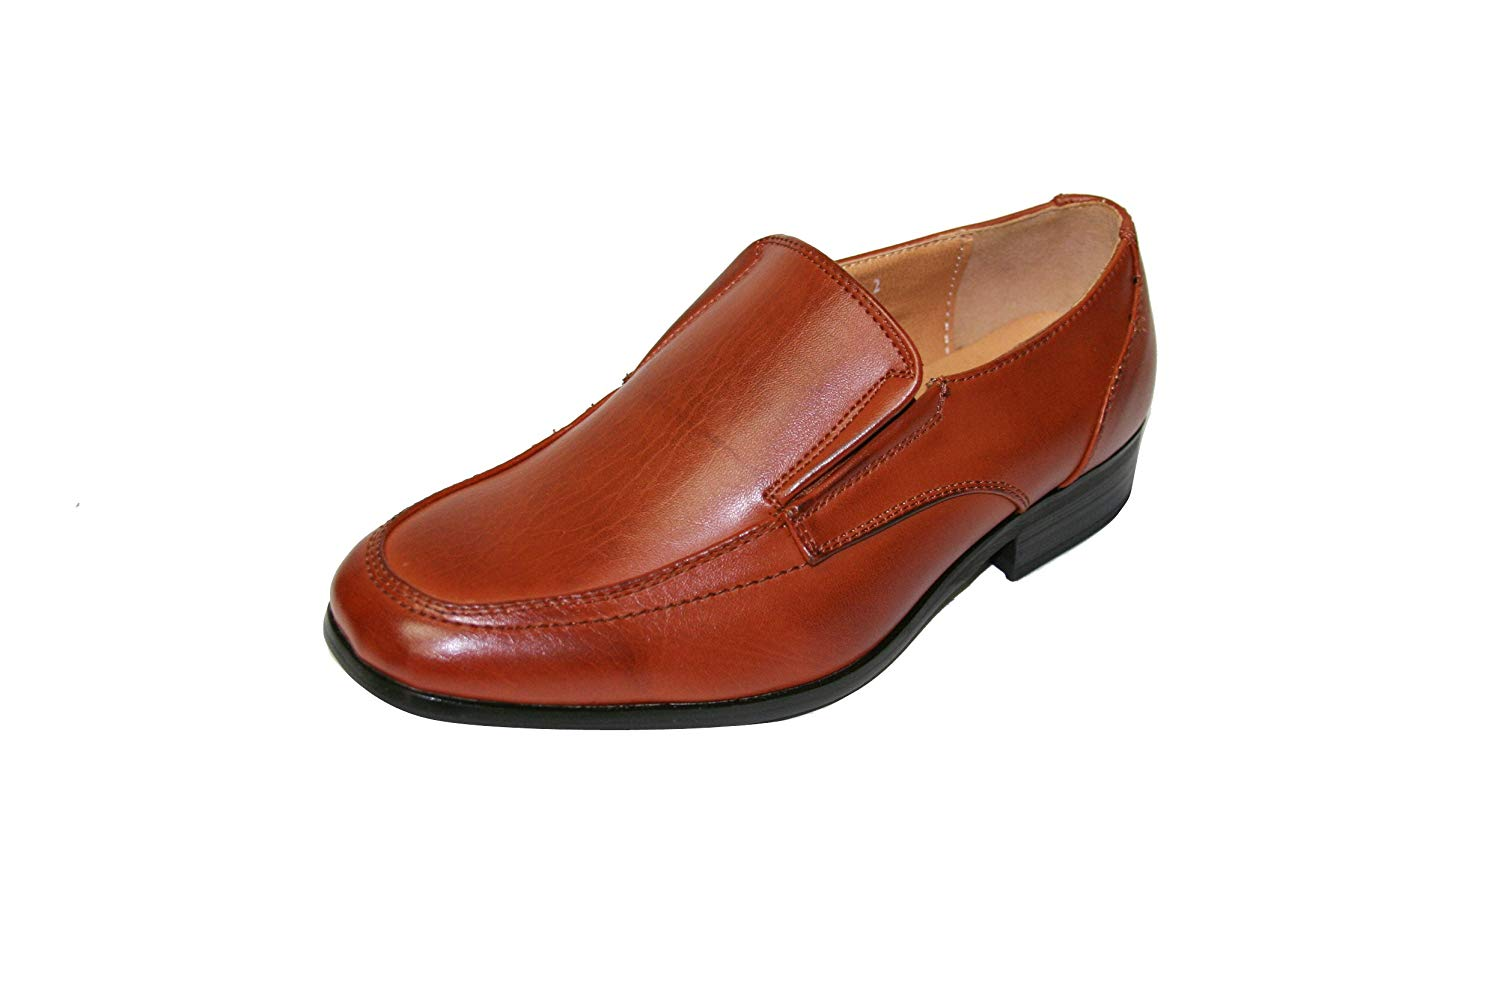 7a449352c038 Get Quotations · Loafers Shoes for Kids Boys Classic Slip On Back-to-School  Shoes (K